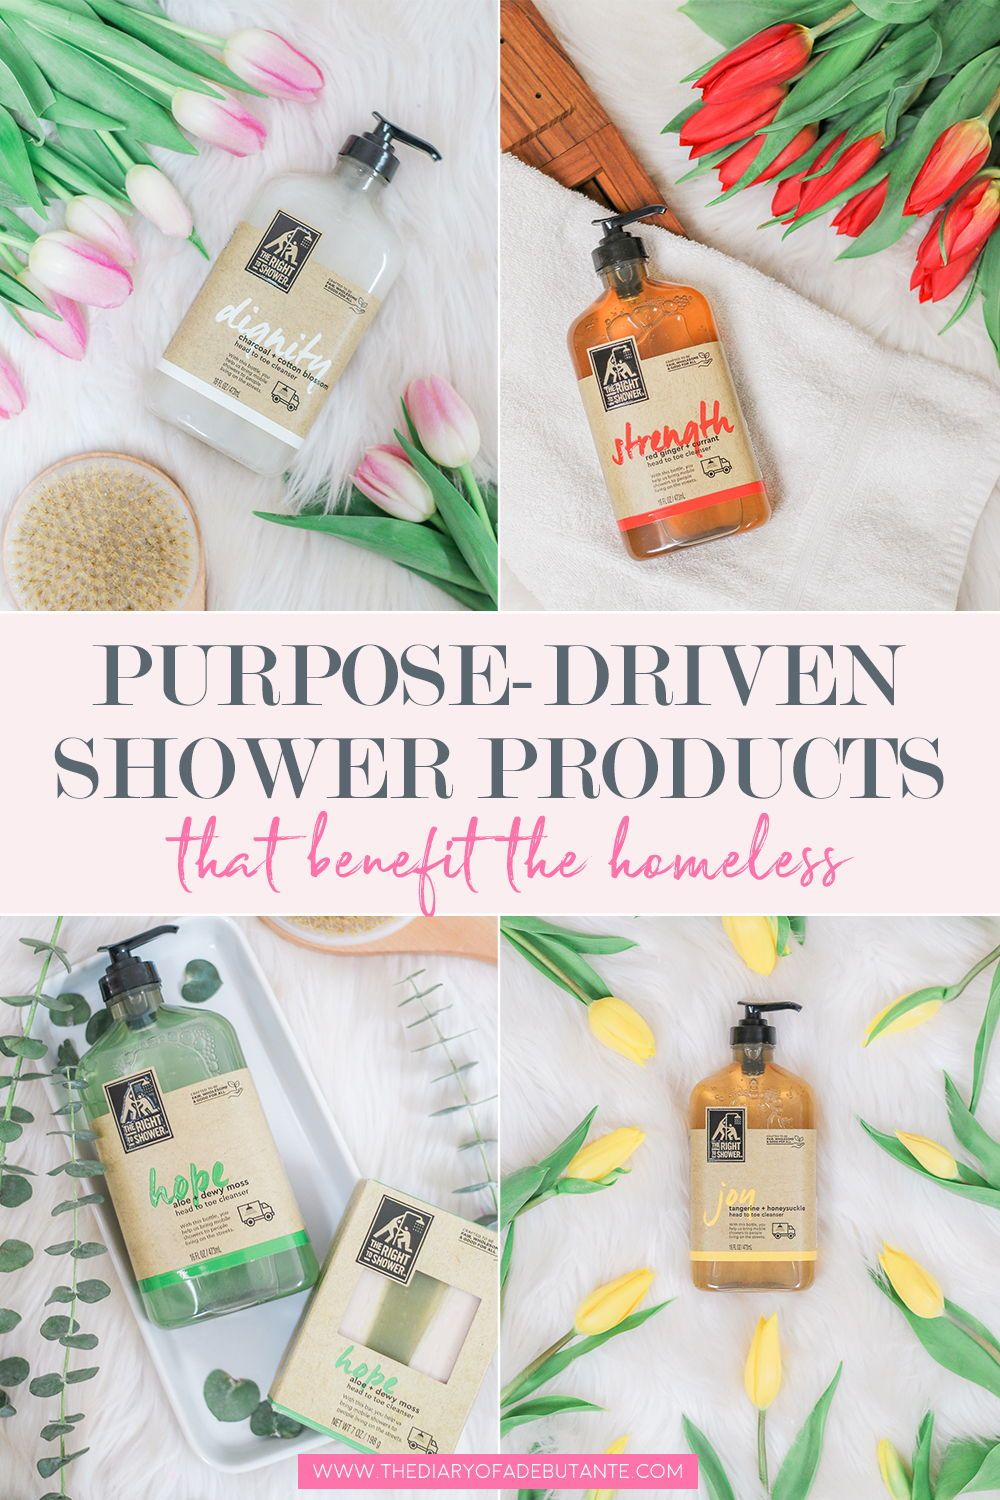 Love beauty products that give back? Give The Right to Shower body wash at Whole Foods a try! Not only are their head-to-toe cleansers organic, vegan, and cruelty-free, 100% of proceeds in 2019 are being donated to mobile shower organizations across the country to help provide individual, safe, clean, and fully-quipped bathrooms to those experiencing homelessness. Click through to learn more! #ad #therightoshower #crueltyfreebeauty #veganbeauty #homelessness